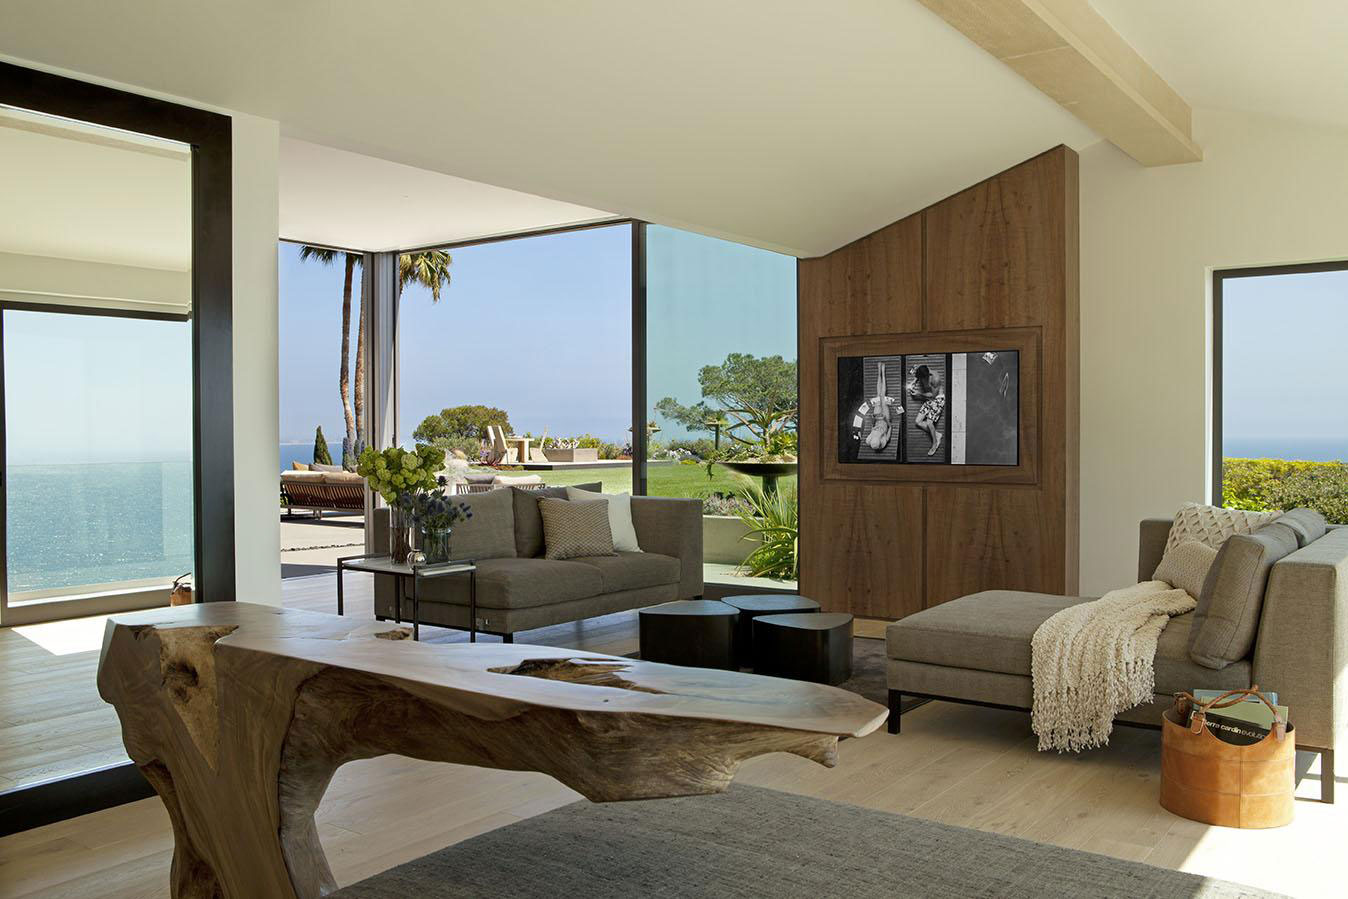 Living Space, Furniture, House in Pacific Palisades, Los Angeles